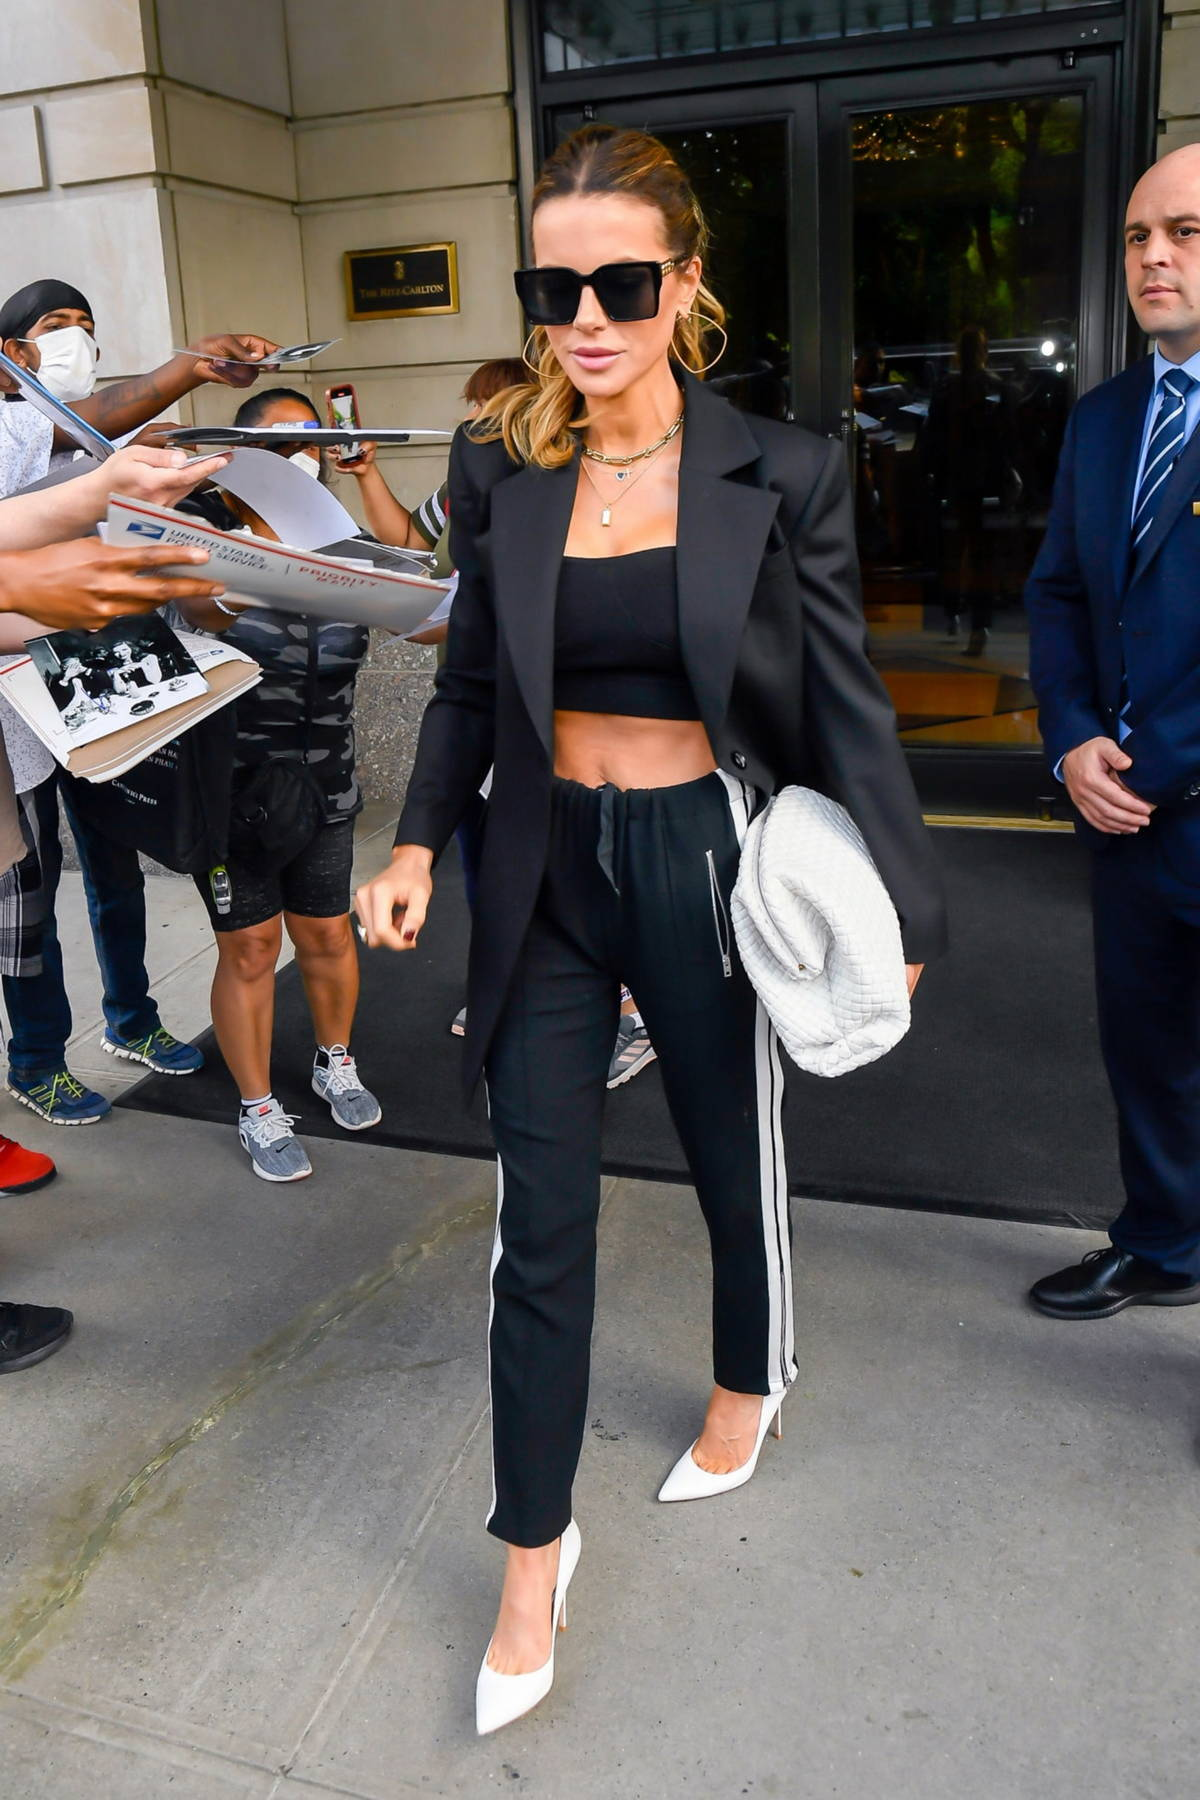 Kate Beckinsale seen leaving The Ritz-Carlton Hotel after press tour for her new Netflix project, 'After Life' in New York City